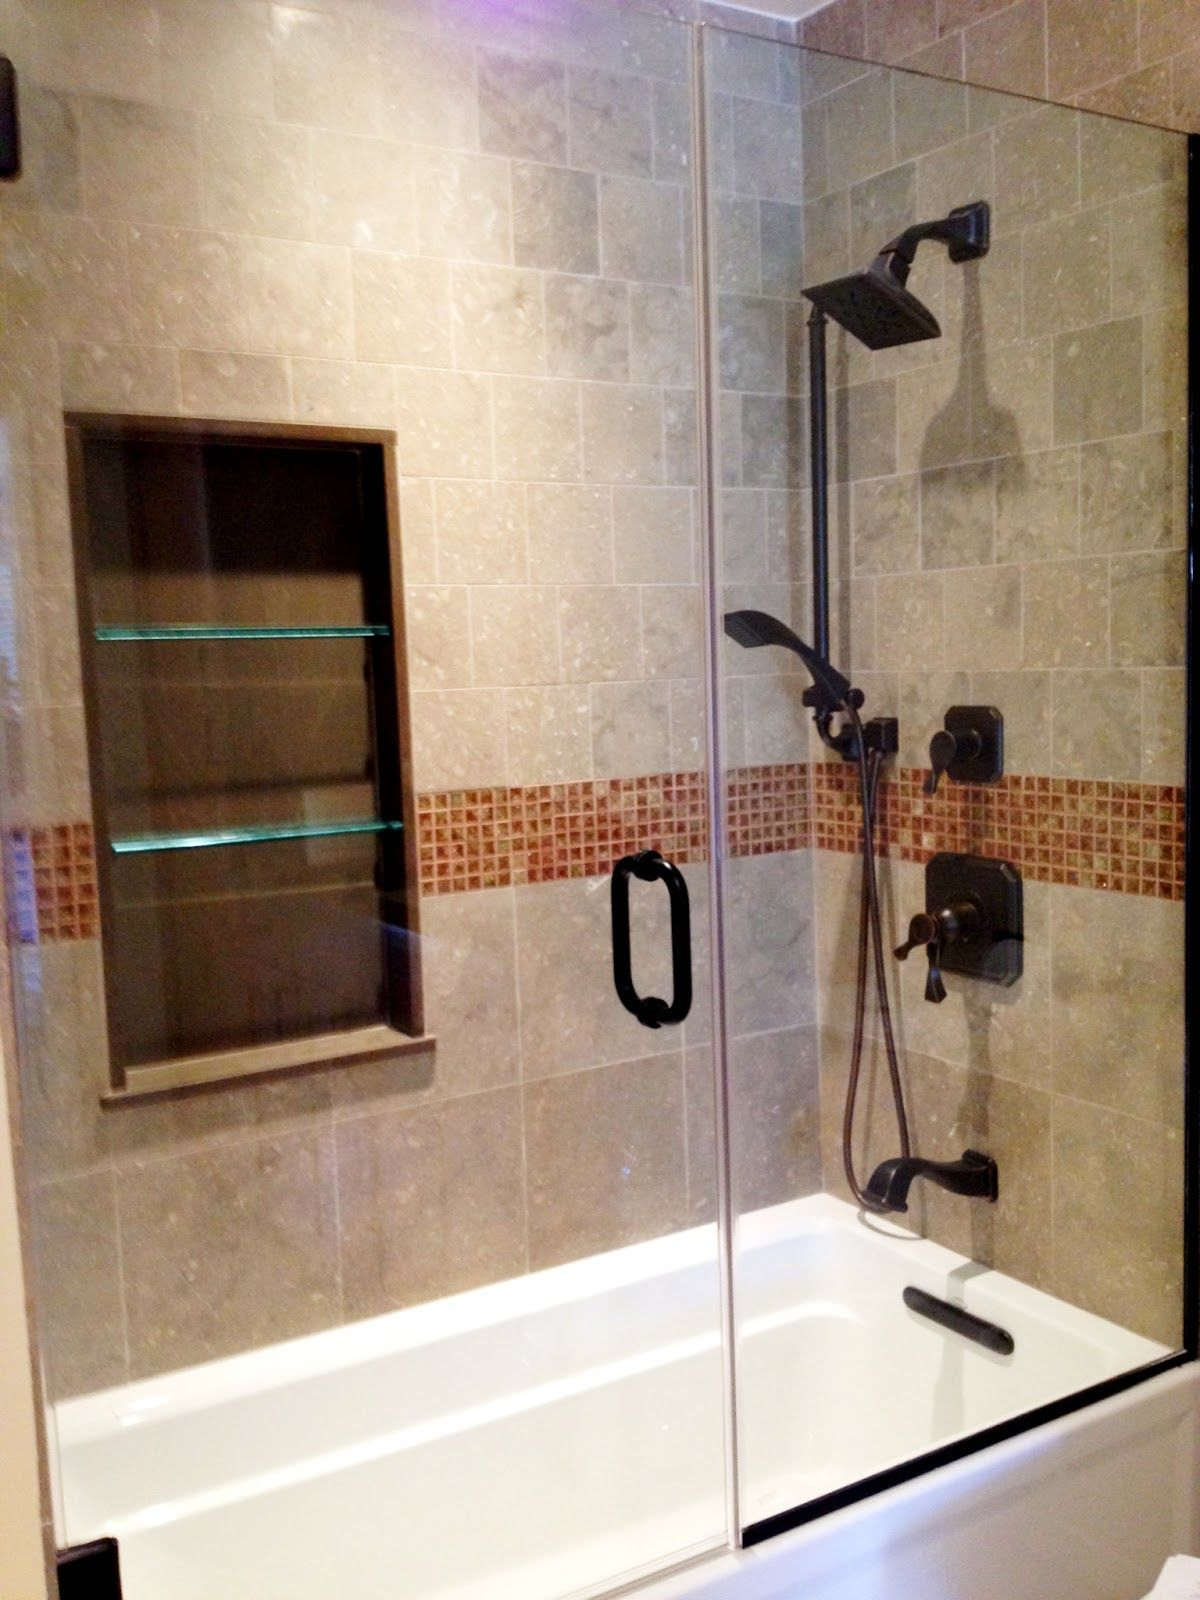 Merveilleux Elegant Brown Wooden Wall Shelves With Classic Shower And Glasses Door Feat  Nice Wall Lights For Small Bathroom Remodel Ideas~ Excellent Home Interior  ...